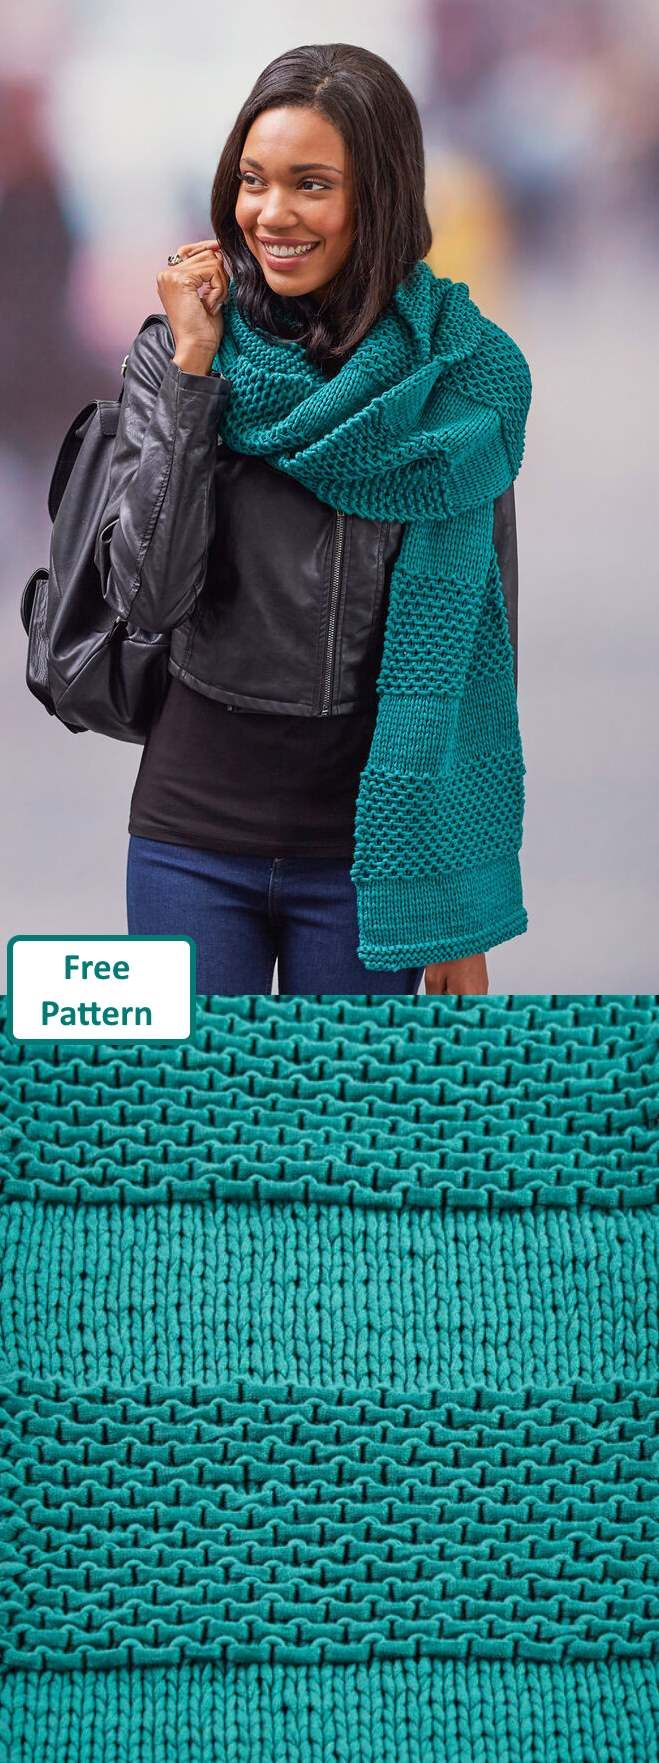 Free Scarf Knitting Patterns pdf textured scarf